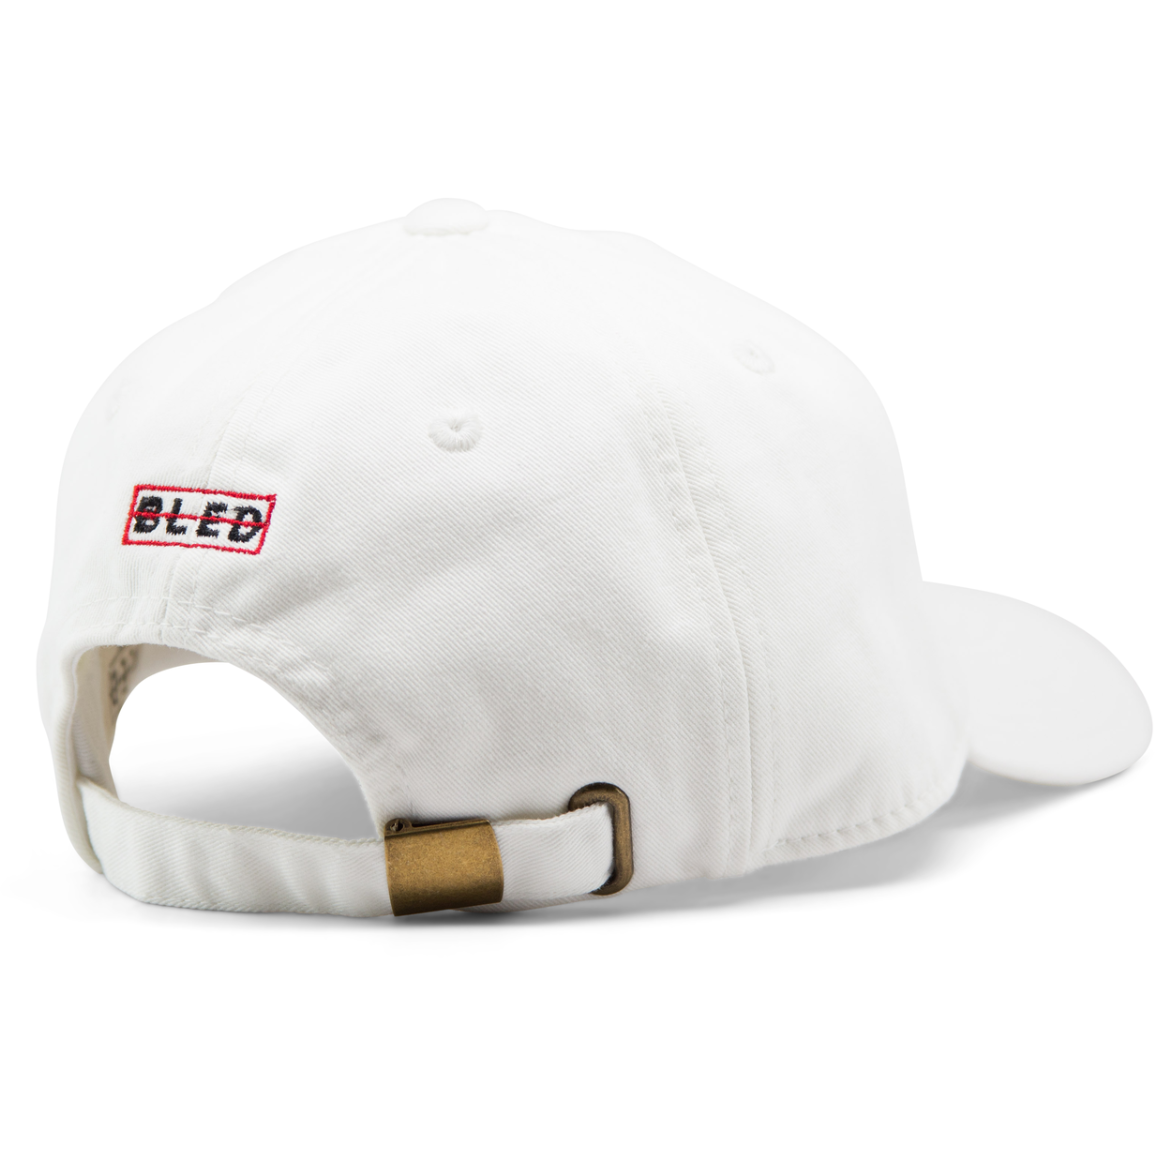 6-panel unconstructed 100% Cotton white dad hat featuring Levels design embroidery on the front and Bled logo embroidered on the back with adjustable strap closure.